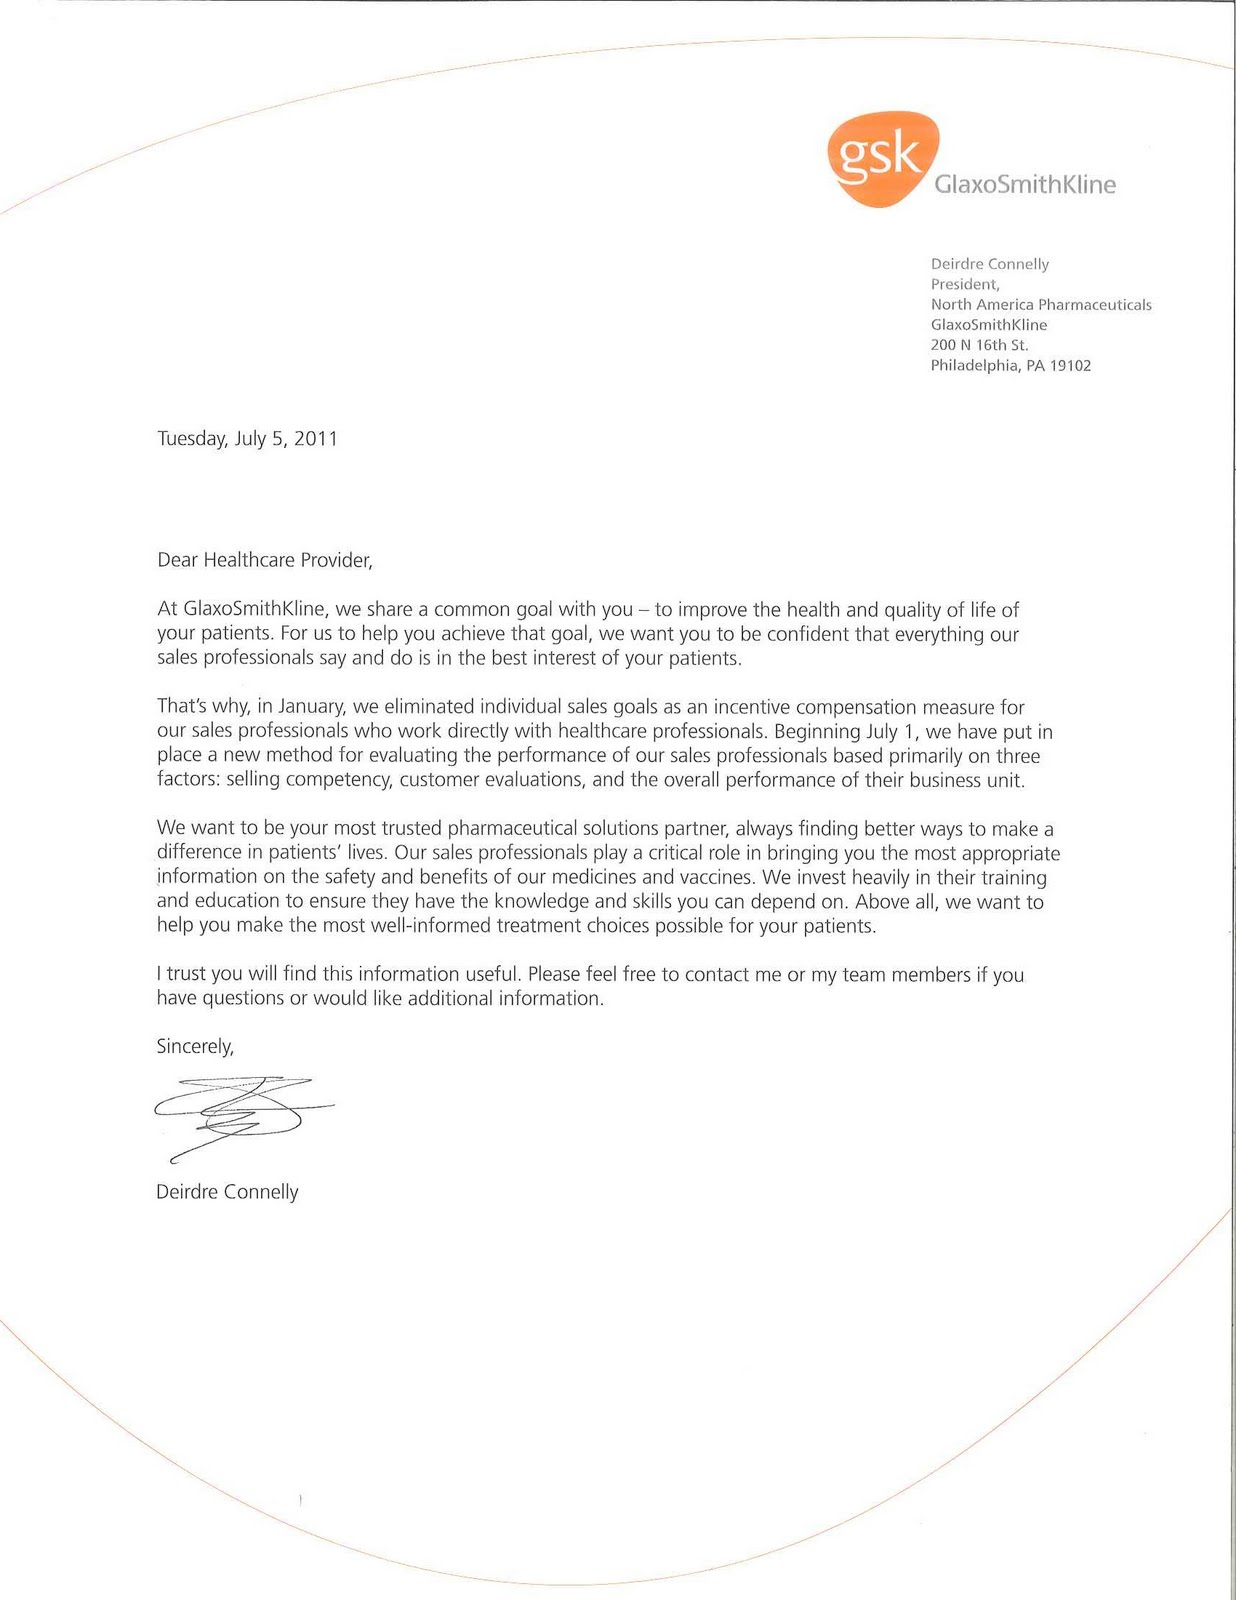 I Received The Attached Dear Doctor Letter Yesterday And Upon Reading Contents Must Commend GSK On Their Corporate Responsibility In Creating A